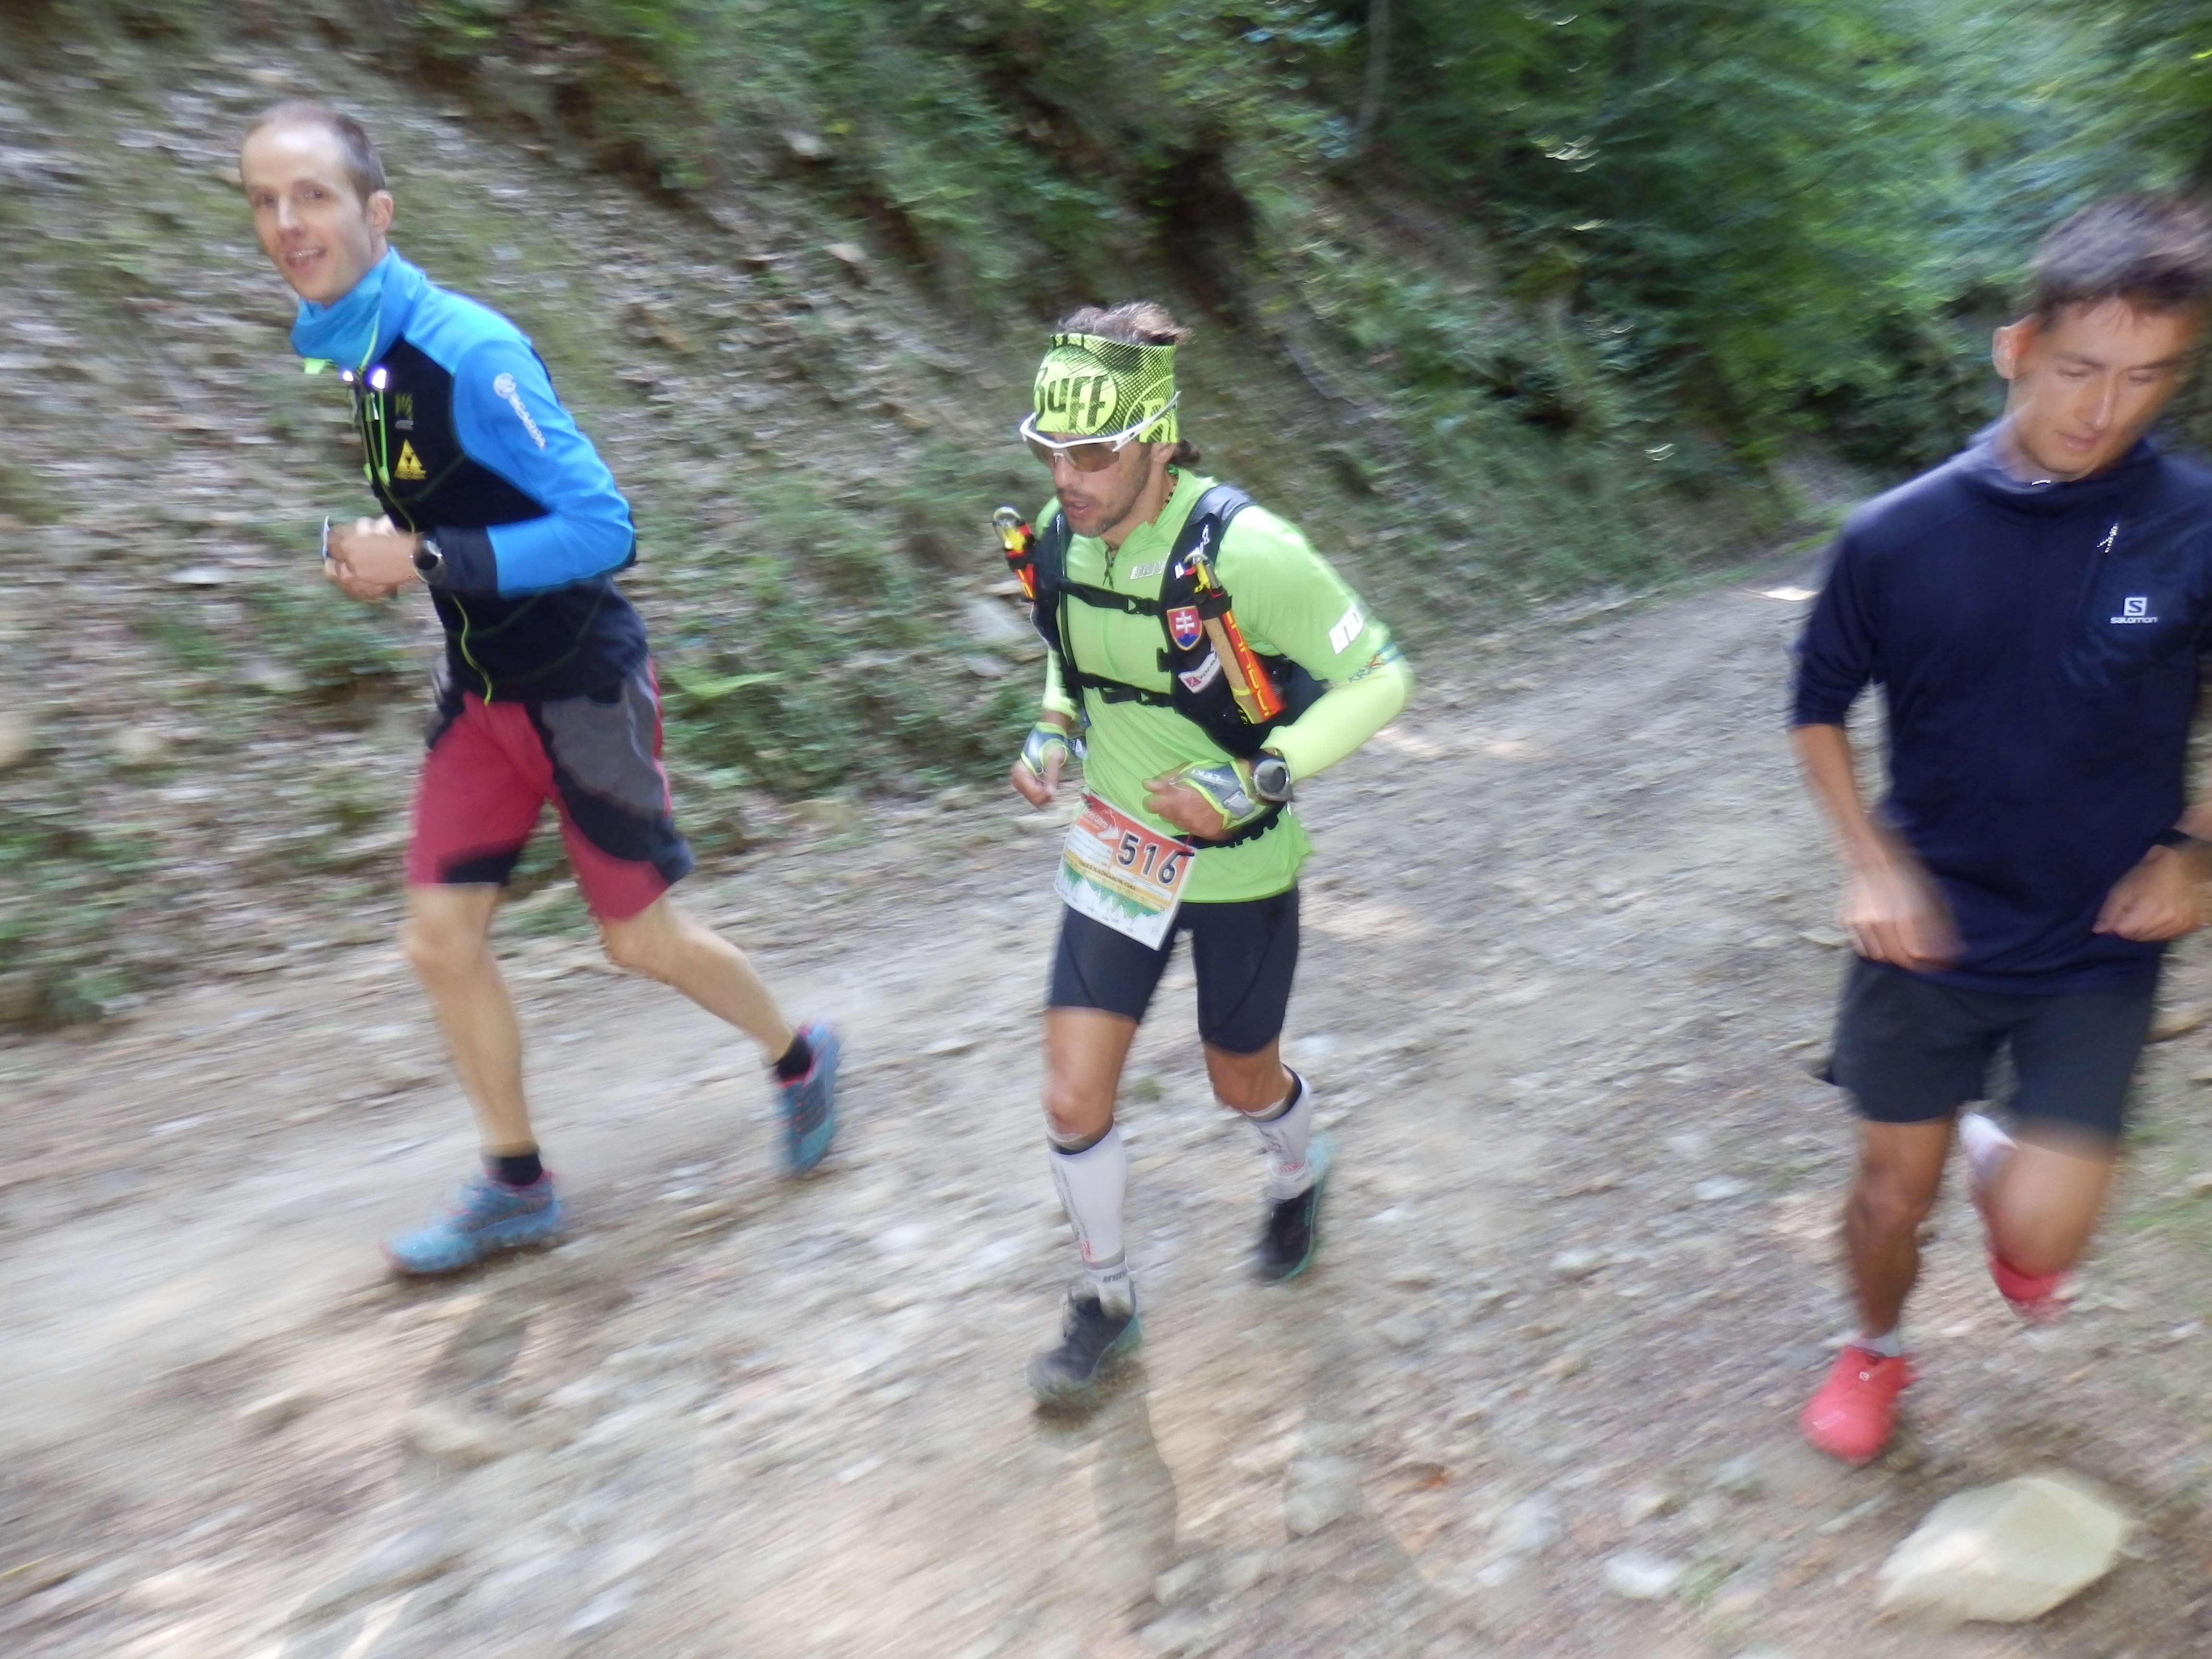 Tomáš Kačmarčík na PIRIN Ultra 2019 - run like no other